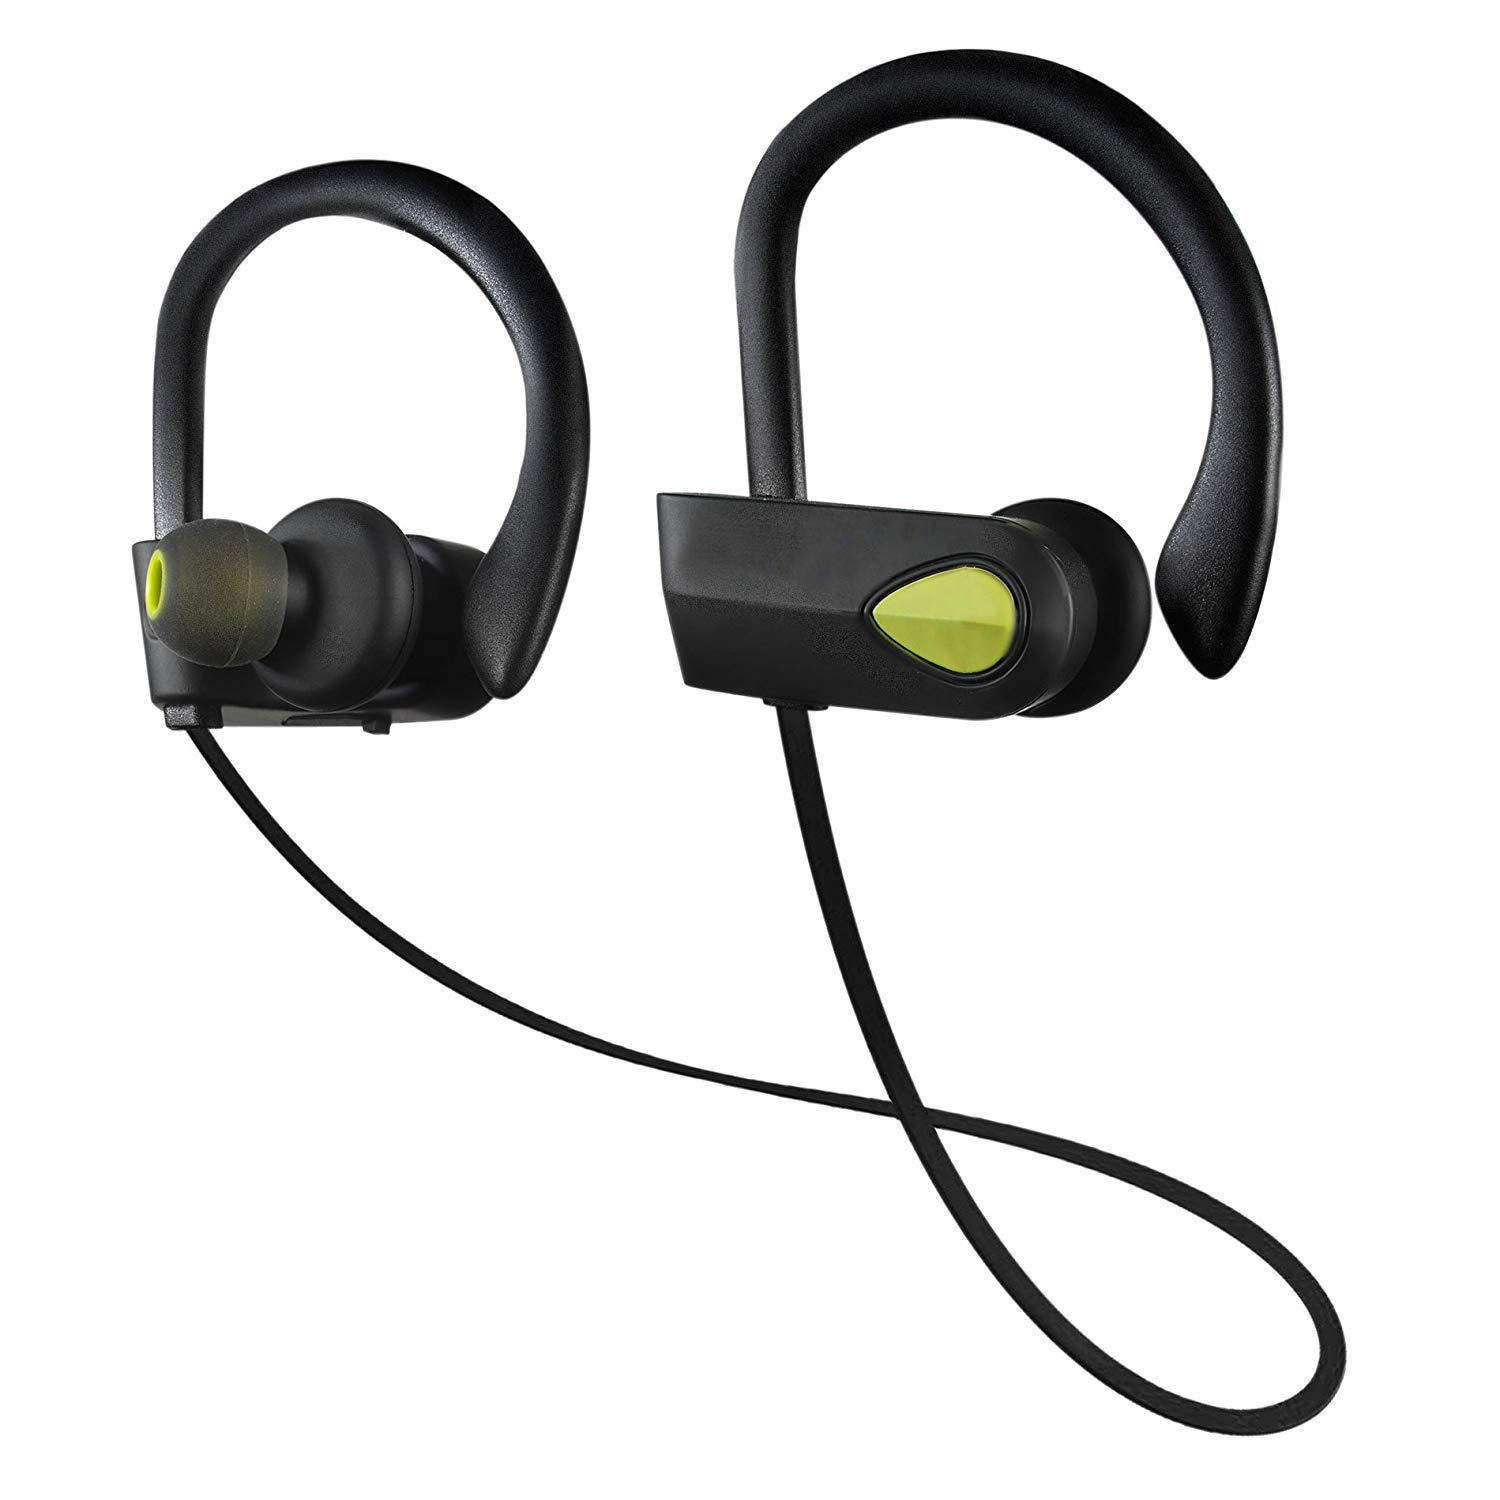 YueMai Acoustic Technology top quality cheap bluetooth headset with great bass for kids